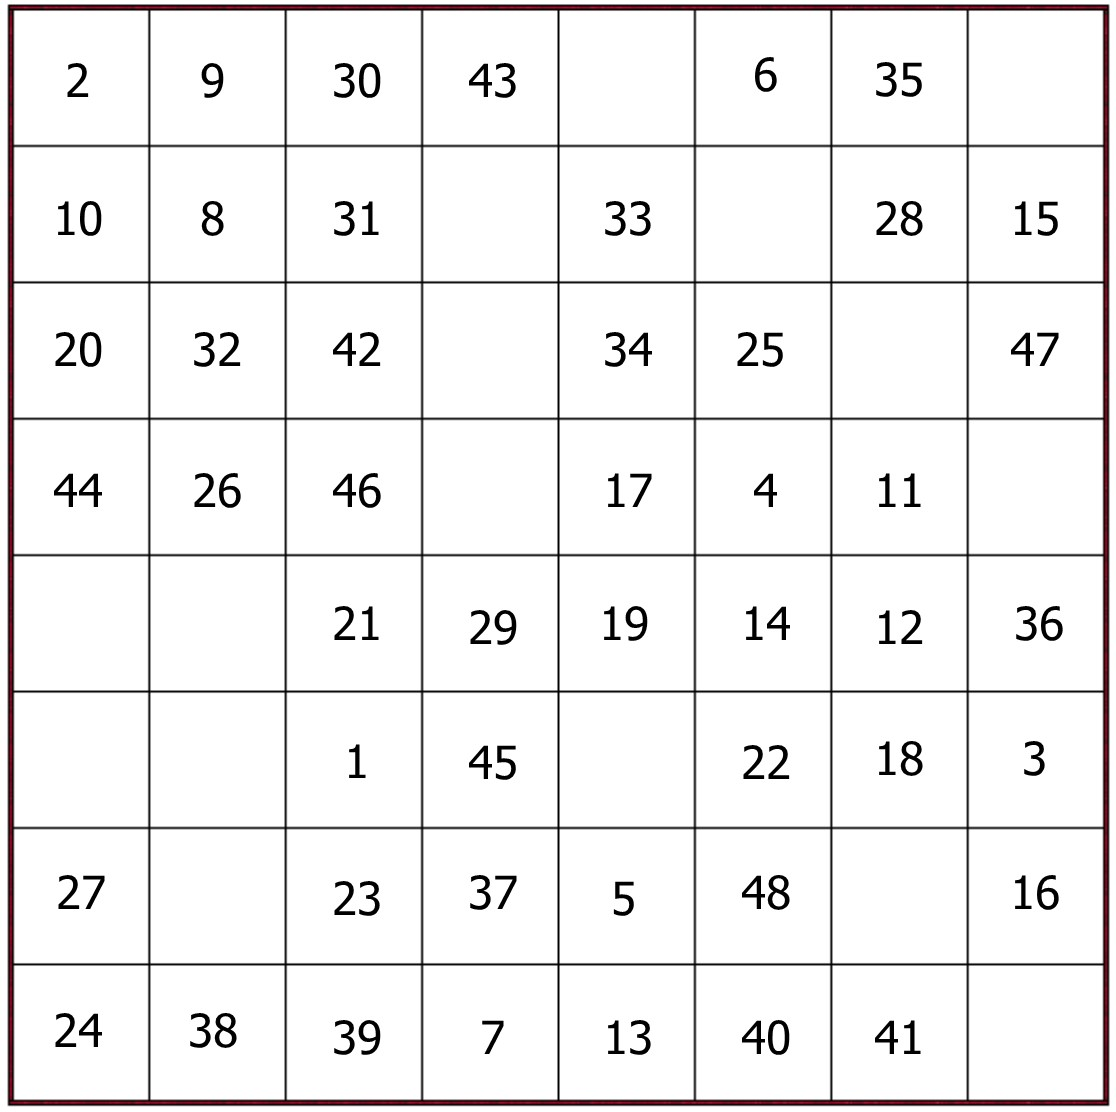 Number Names Worksheets write the number names worksheets : Index of /wp-content/uploads/2016/01/